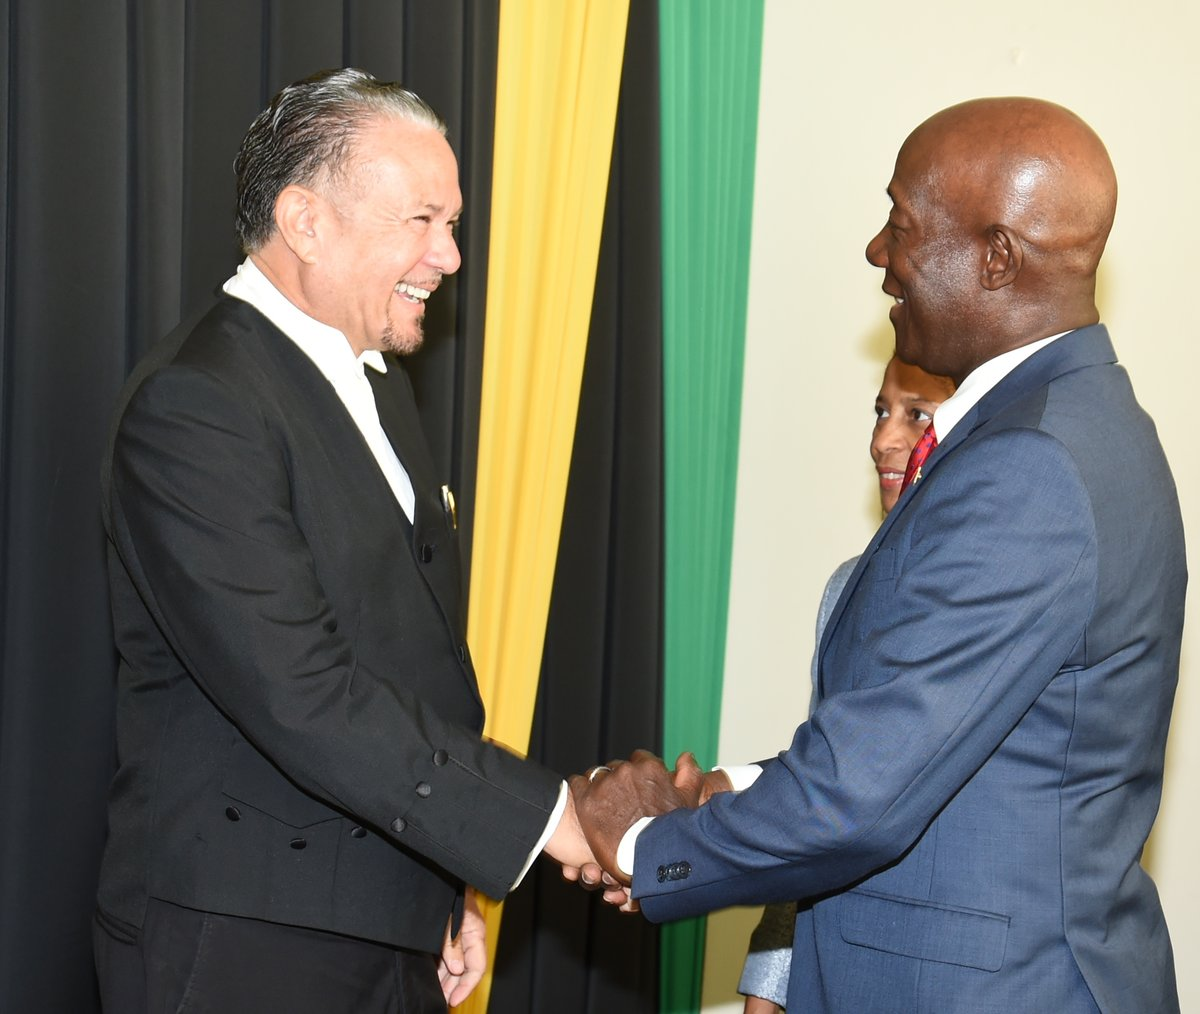 PM Dr Keith Rowley is greeted by Honourable Tom Tavares-Finson